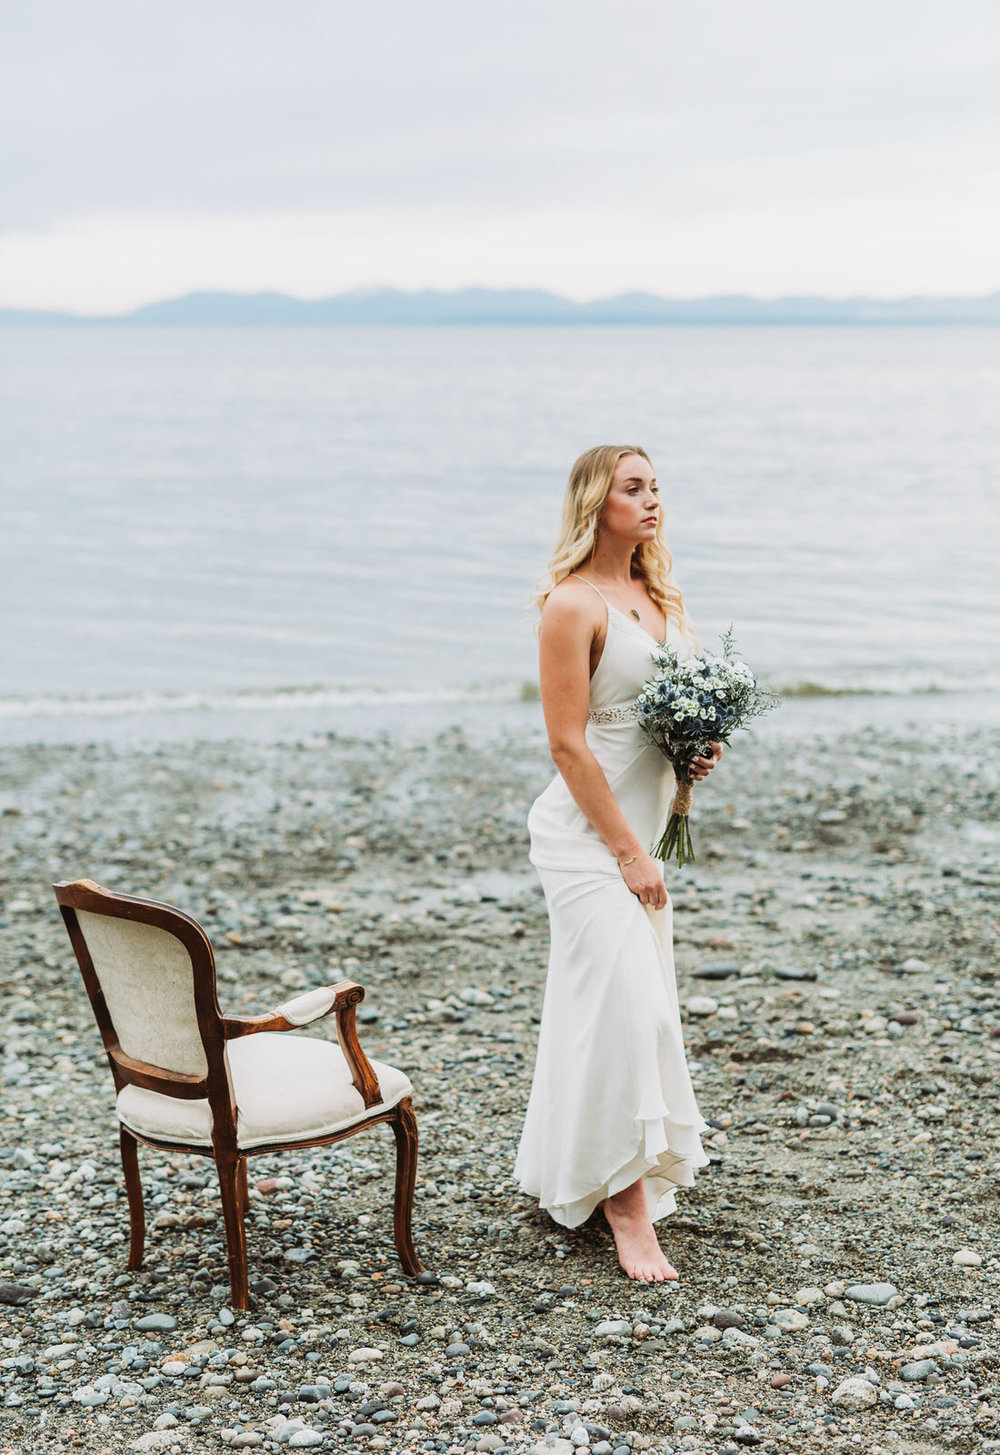 Jennifer Picard Photography - Vancouver Wedding Photographer - Sunshine Coast Wedding Photographer - Bridal InspirationIMG_8915.jpg